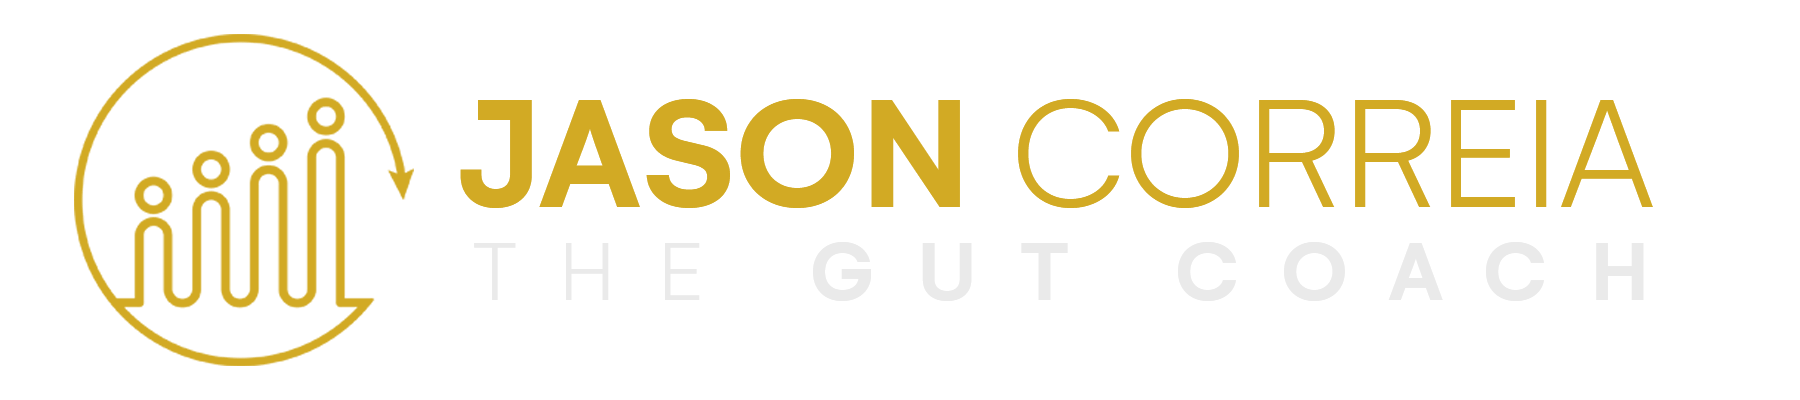 Jason Correia The Gut Coach logo